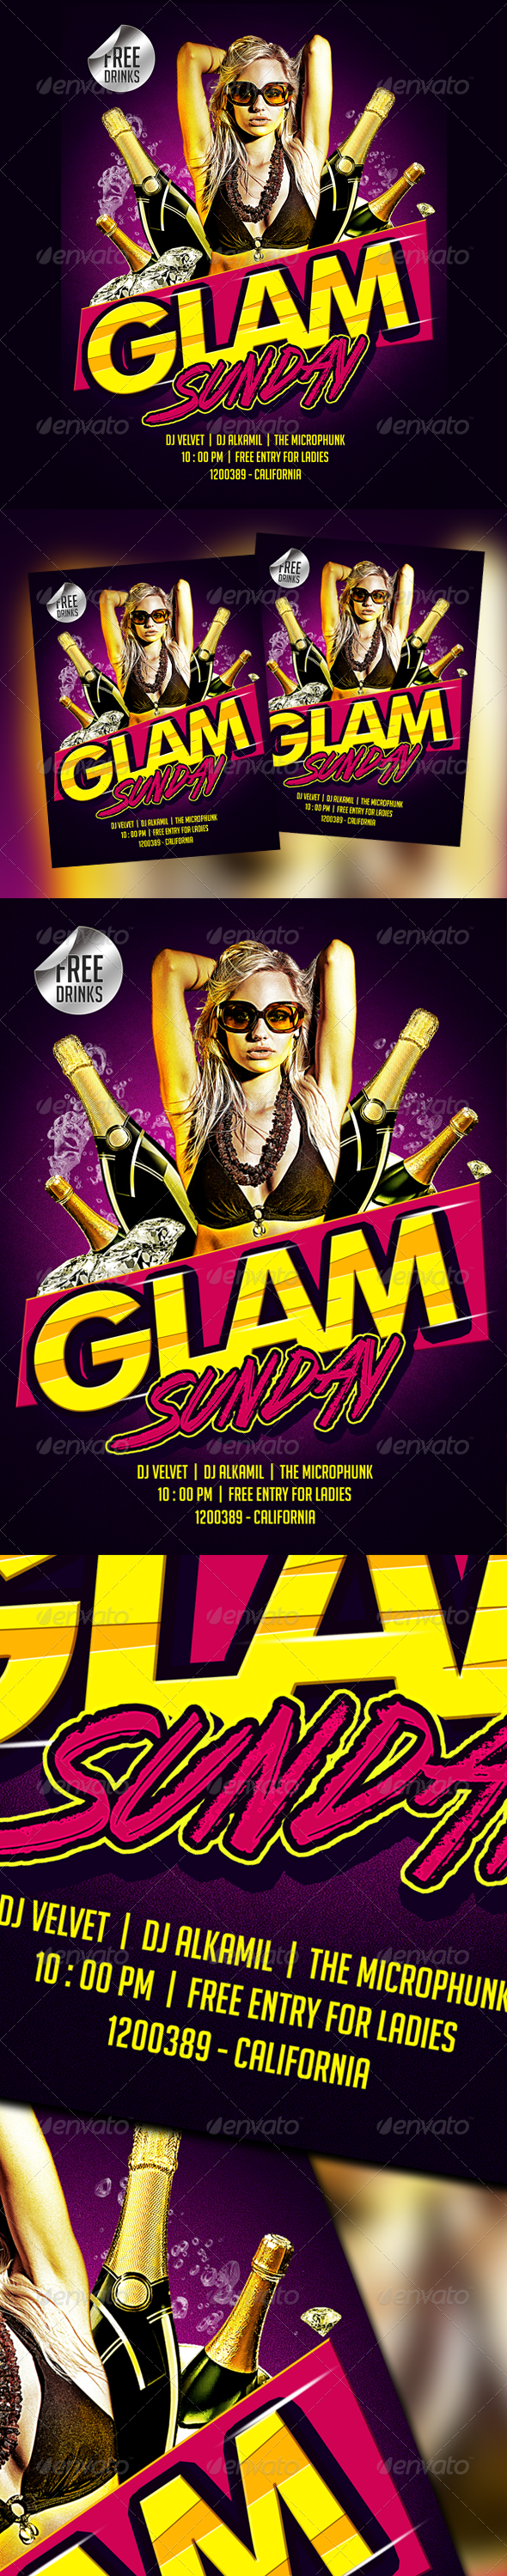 Glam Sunday - Psd Party Flyer - Clubs & Parties Events